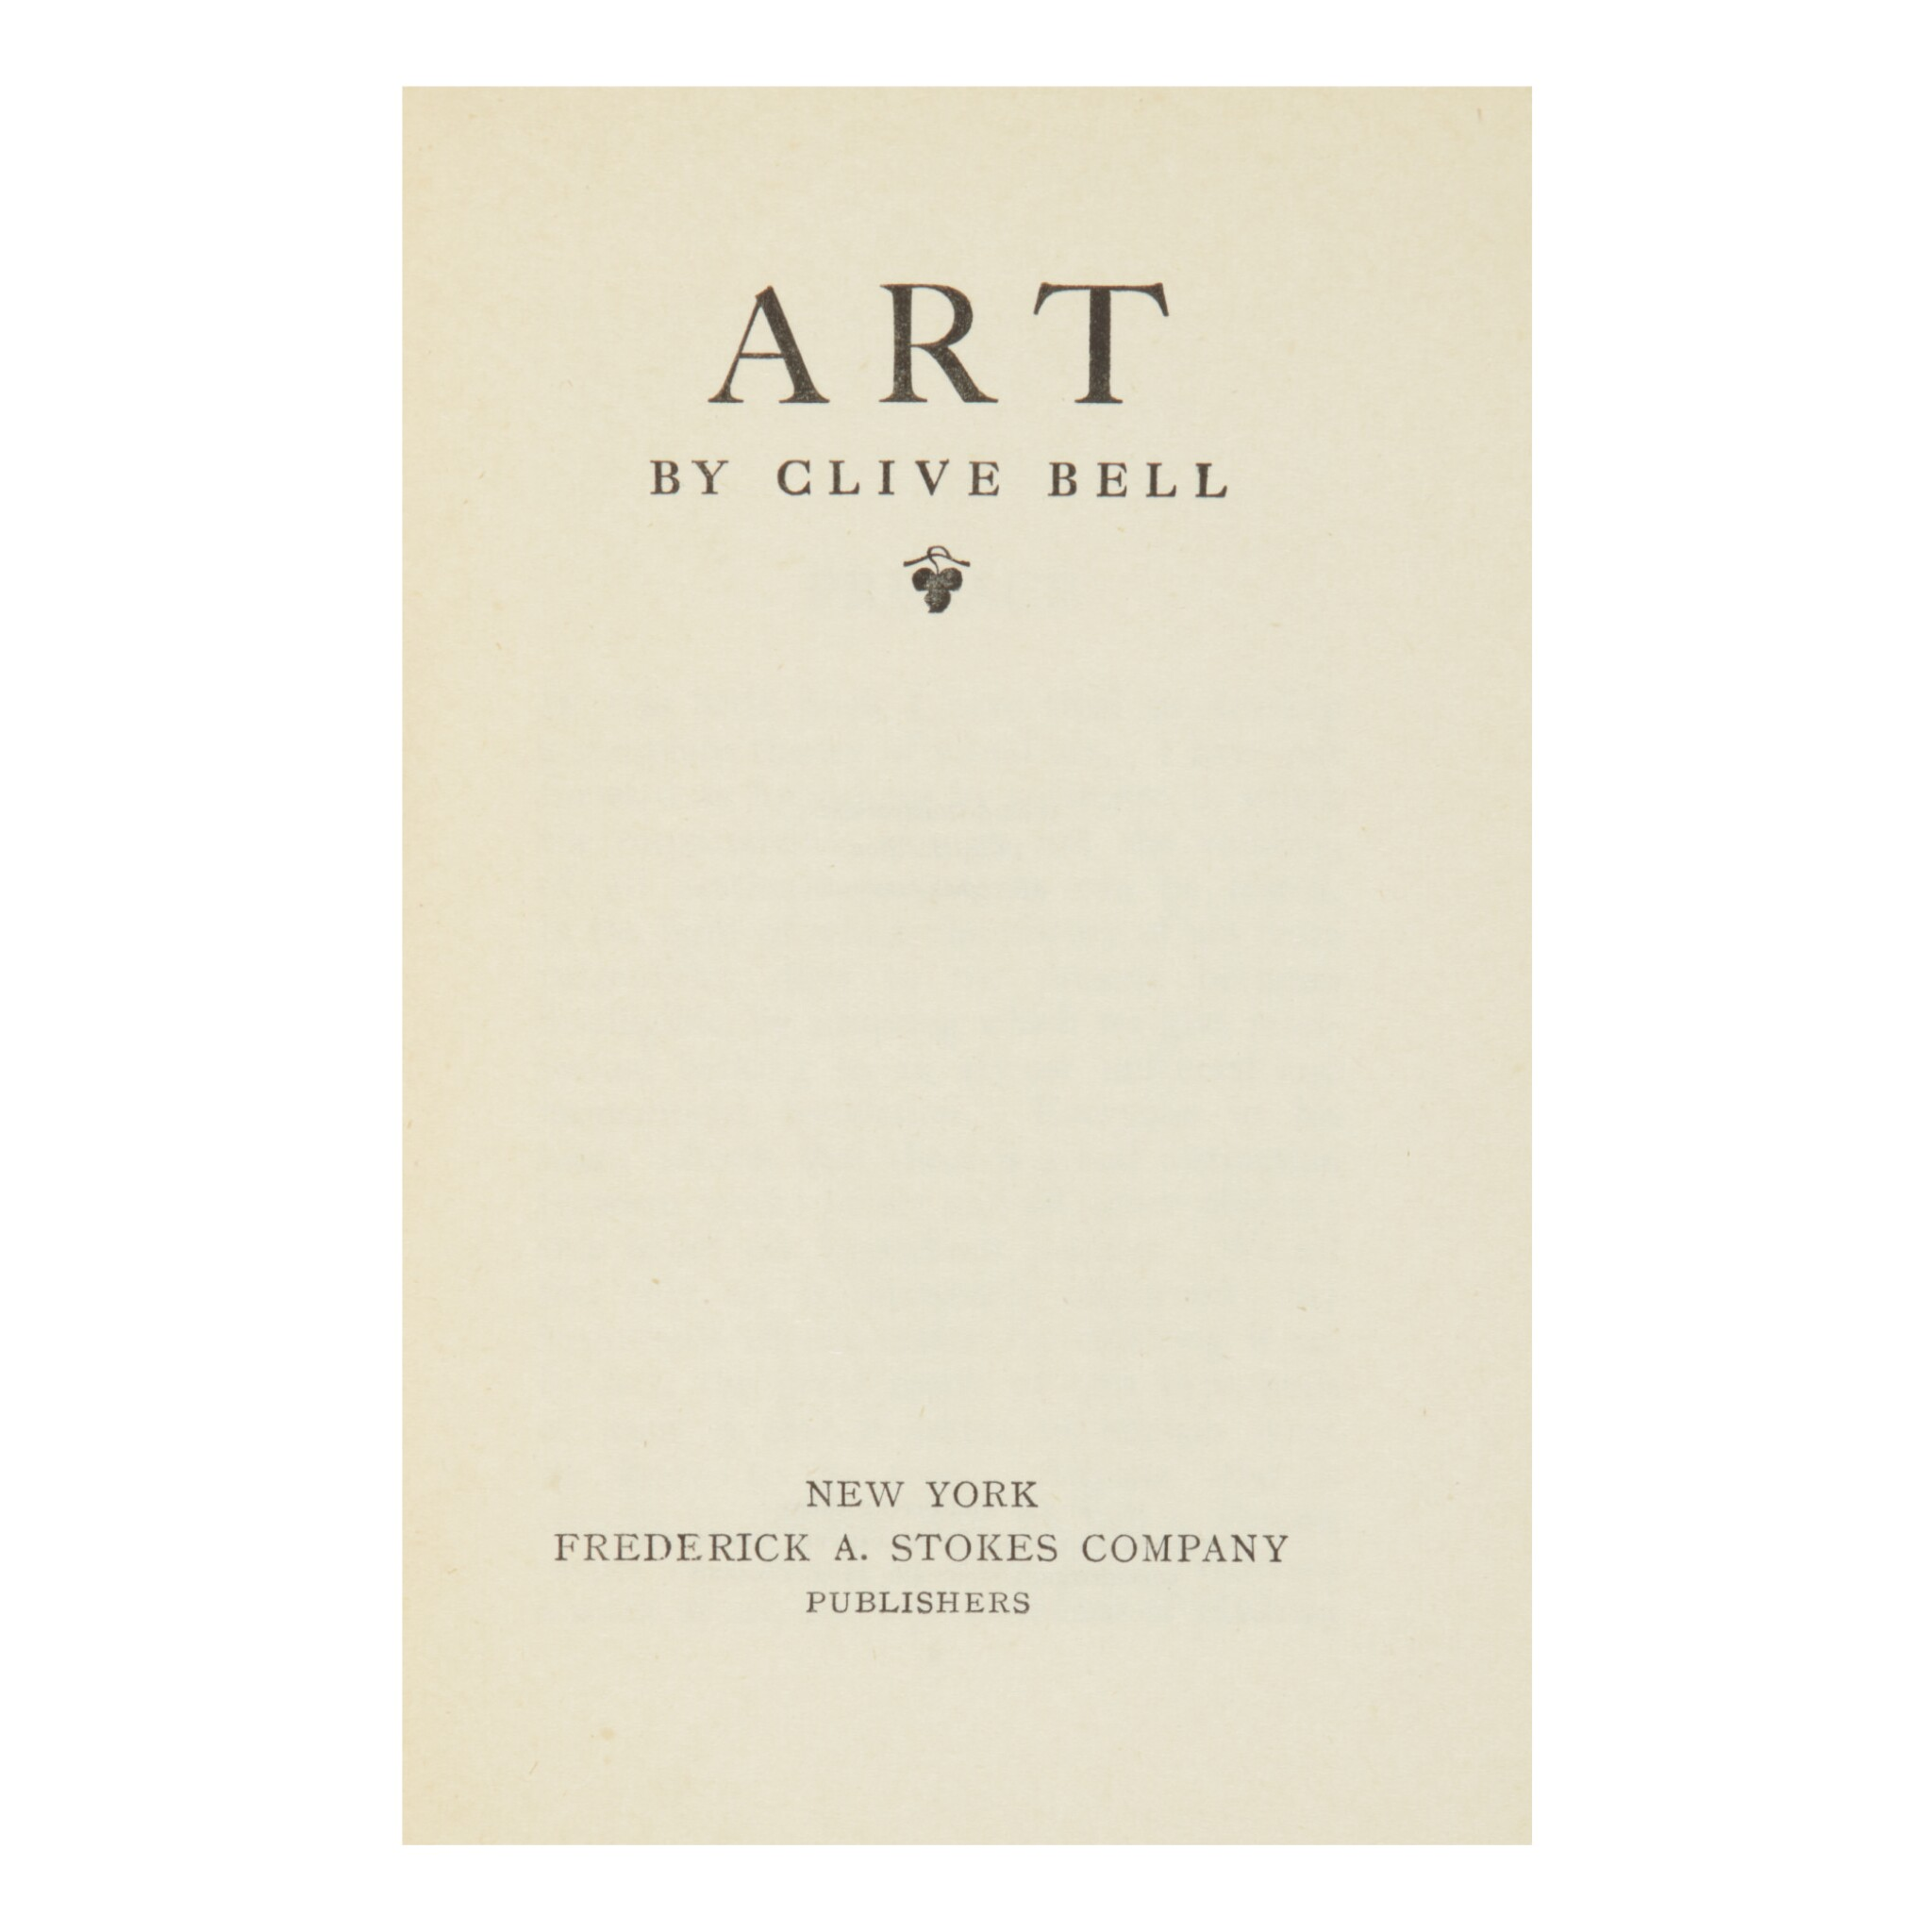 CLIVE BELL | ART. NEW YORK: (CA. 1913), GEORGIA O'KEEFFE'S COPY, GIVEN TO HER BY ALFRED STIEGLITZ